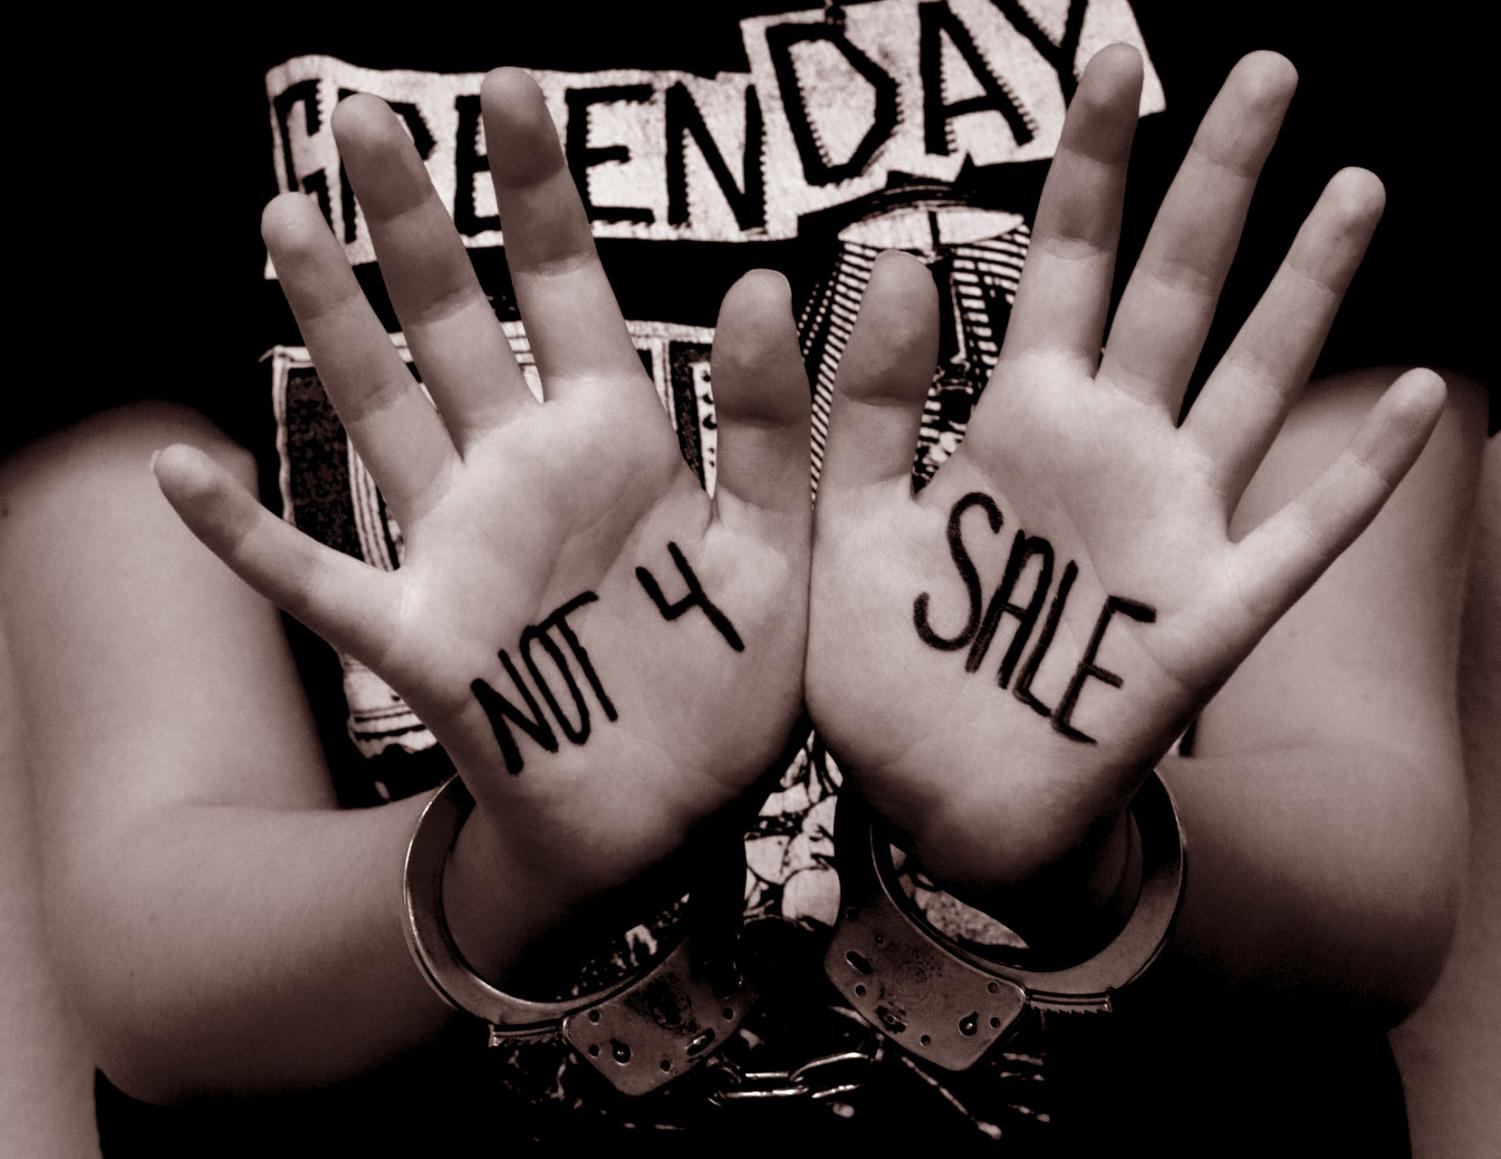 Human Trafficking enslaves unsuspecting teens  and immigrants which is much more common in the metropolitan area than the small towns.